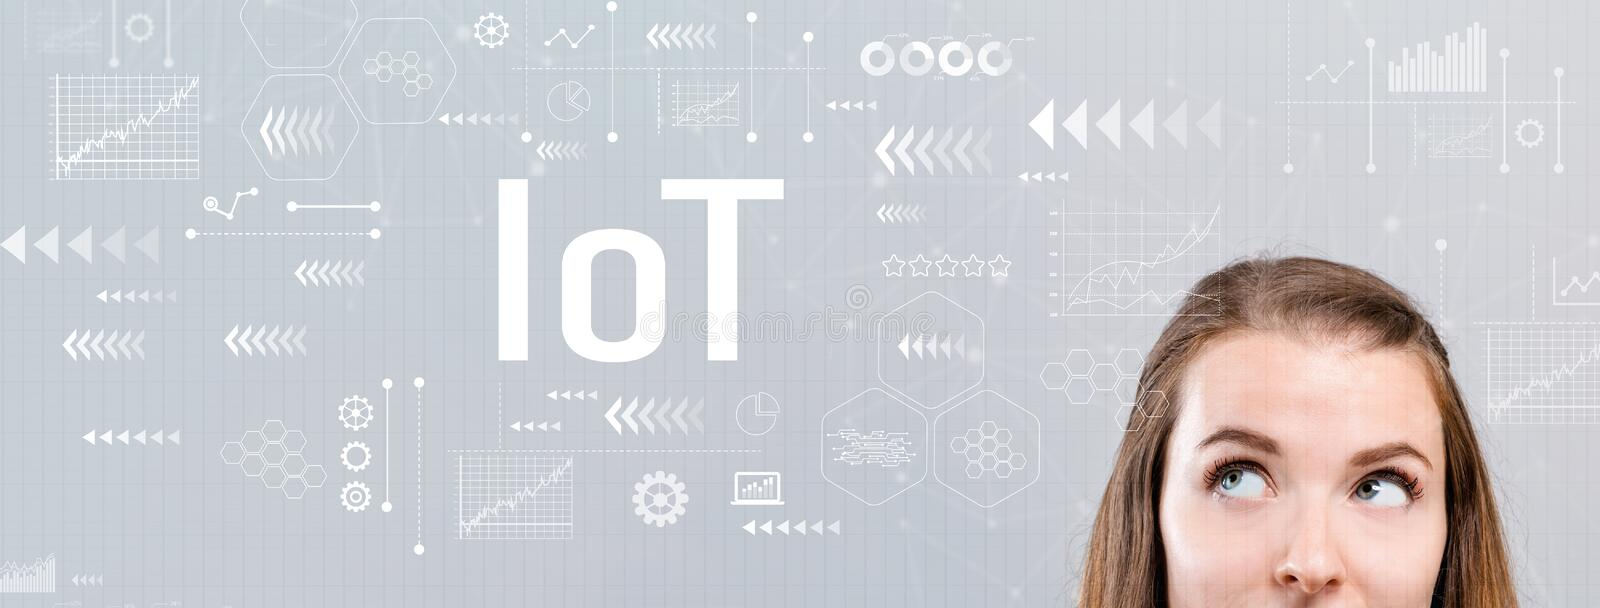 IoT with young woman royalty free stock photos